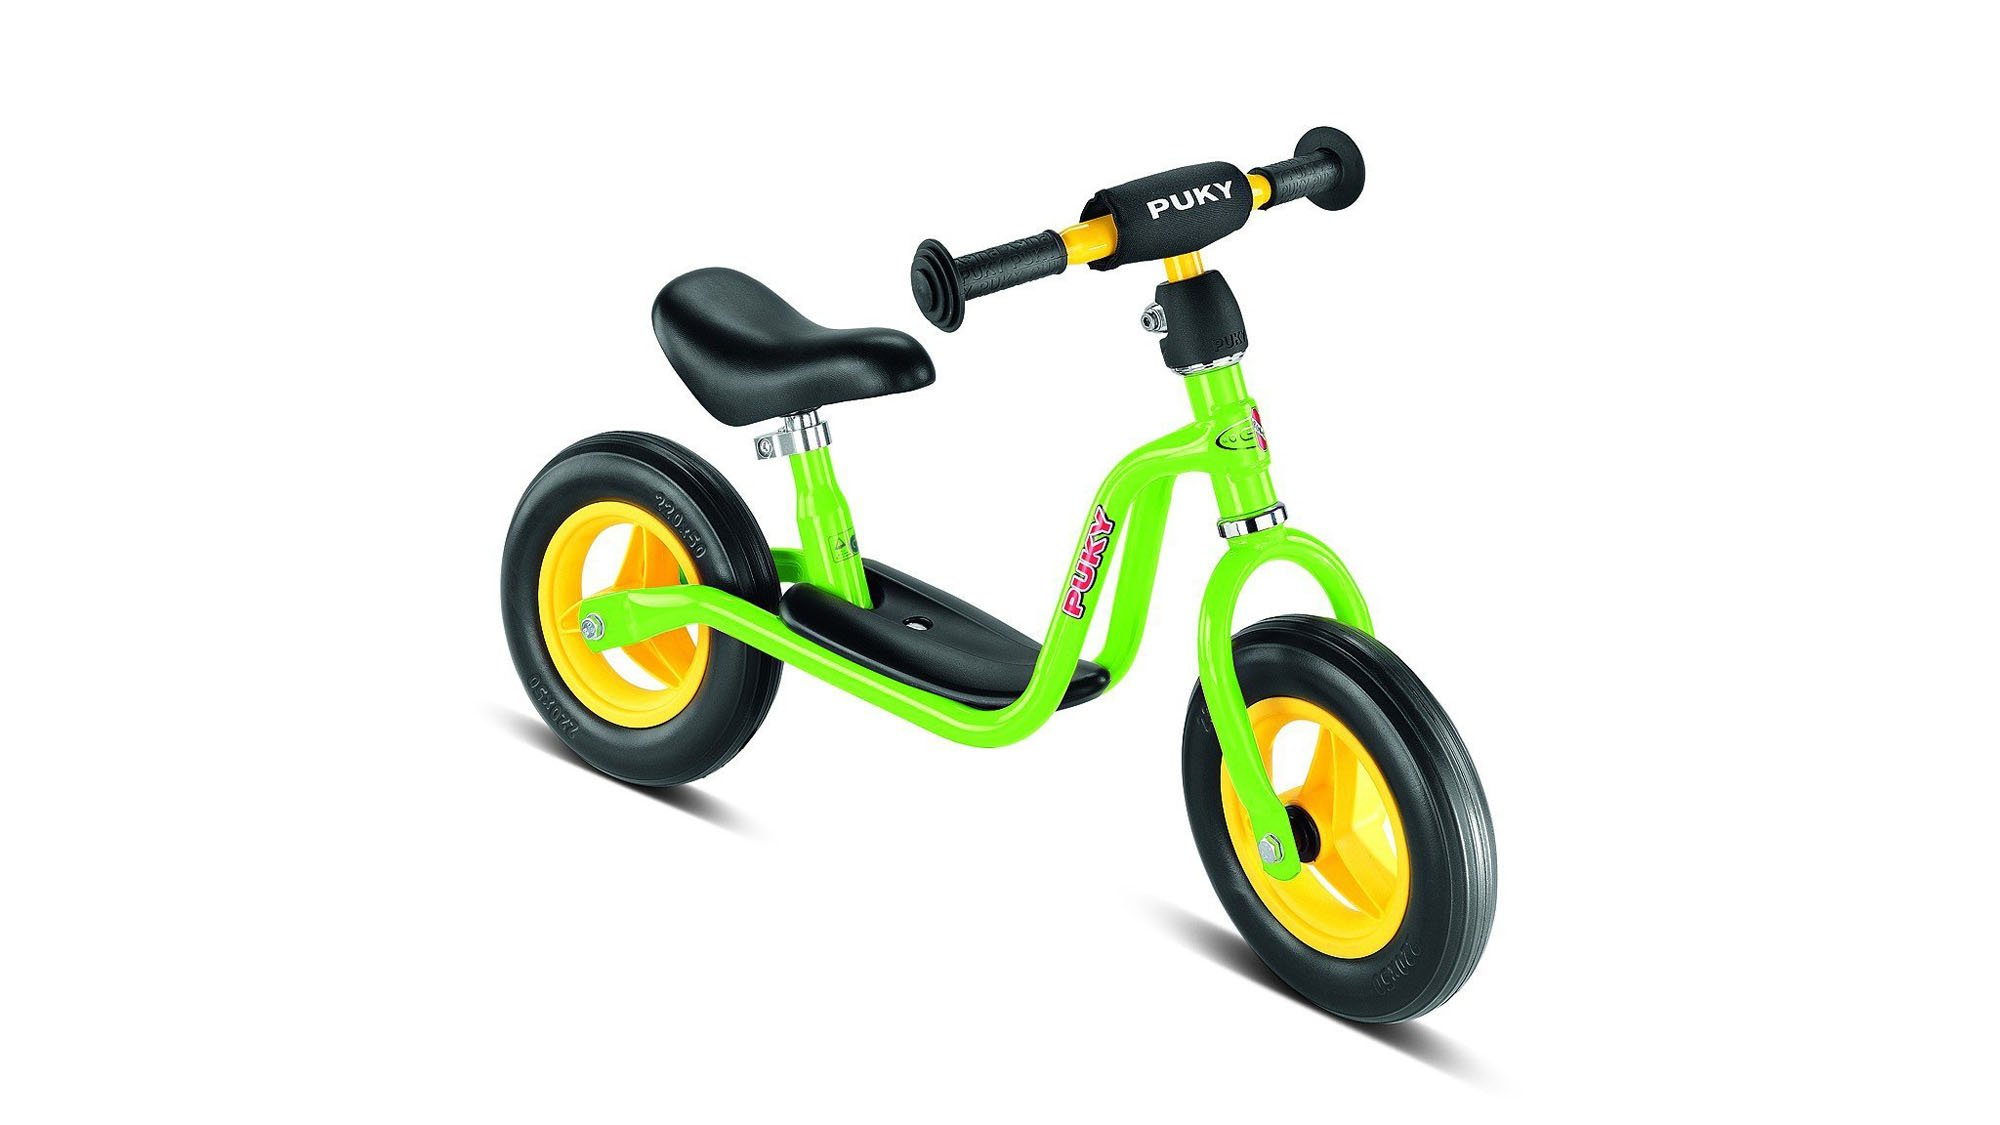 Balance Wheel Childrens Toy Kids Pedal Toy Indy Fun Stepper Pedal Toy